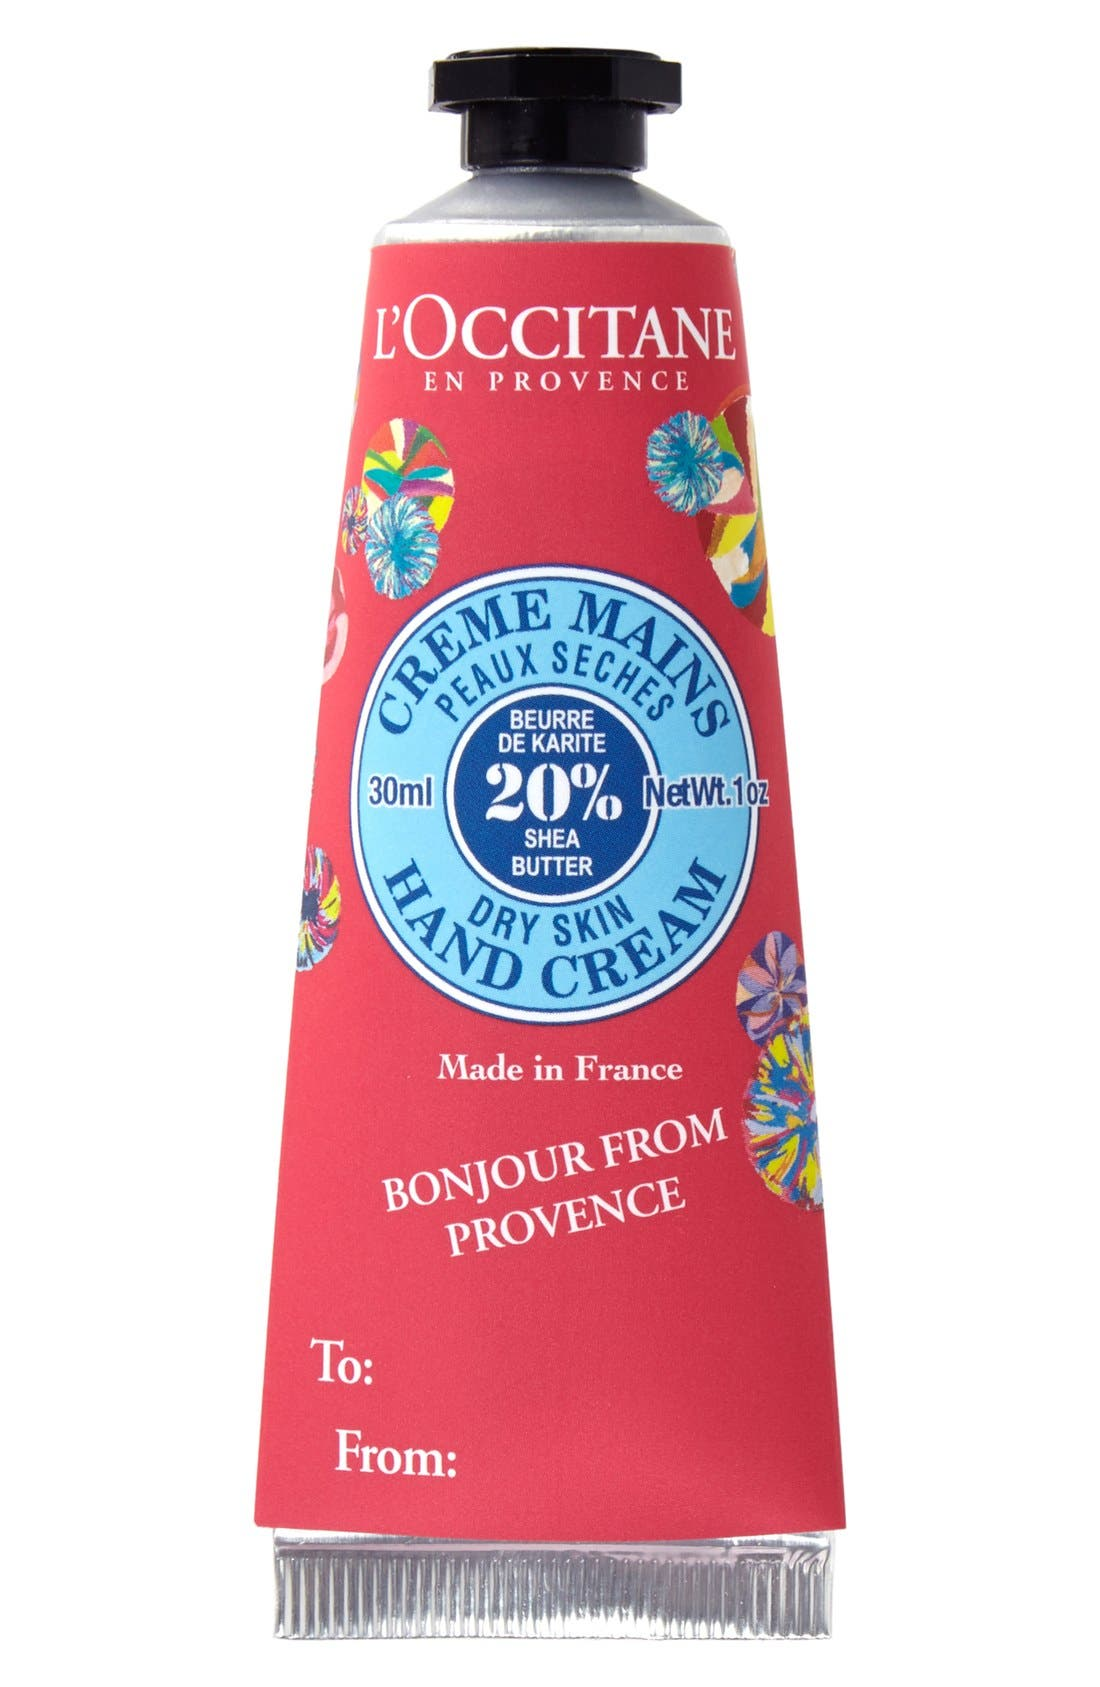 L'Occitane Shea Butter Hand Cream with Removable Sleeve (1 oz.) (Limited Edition)